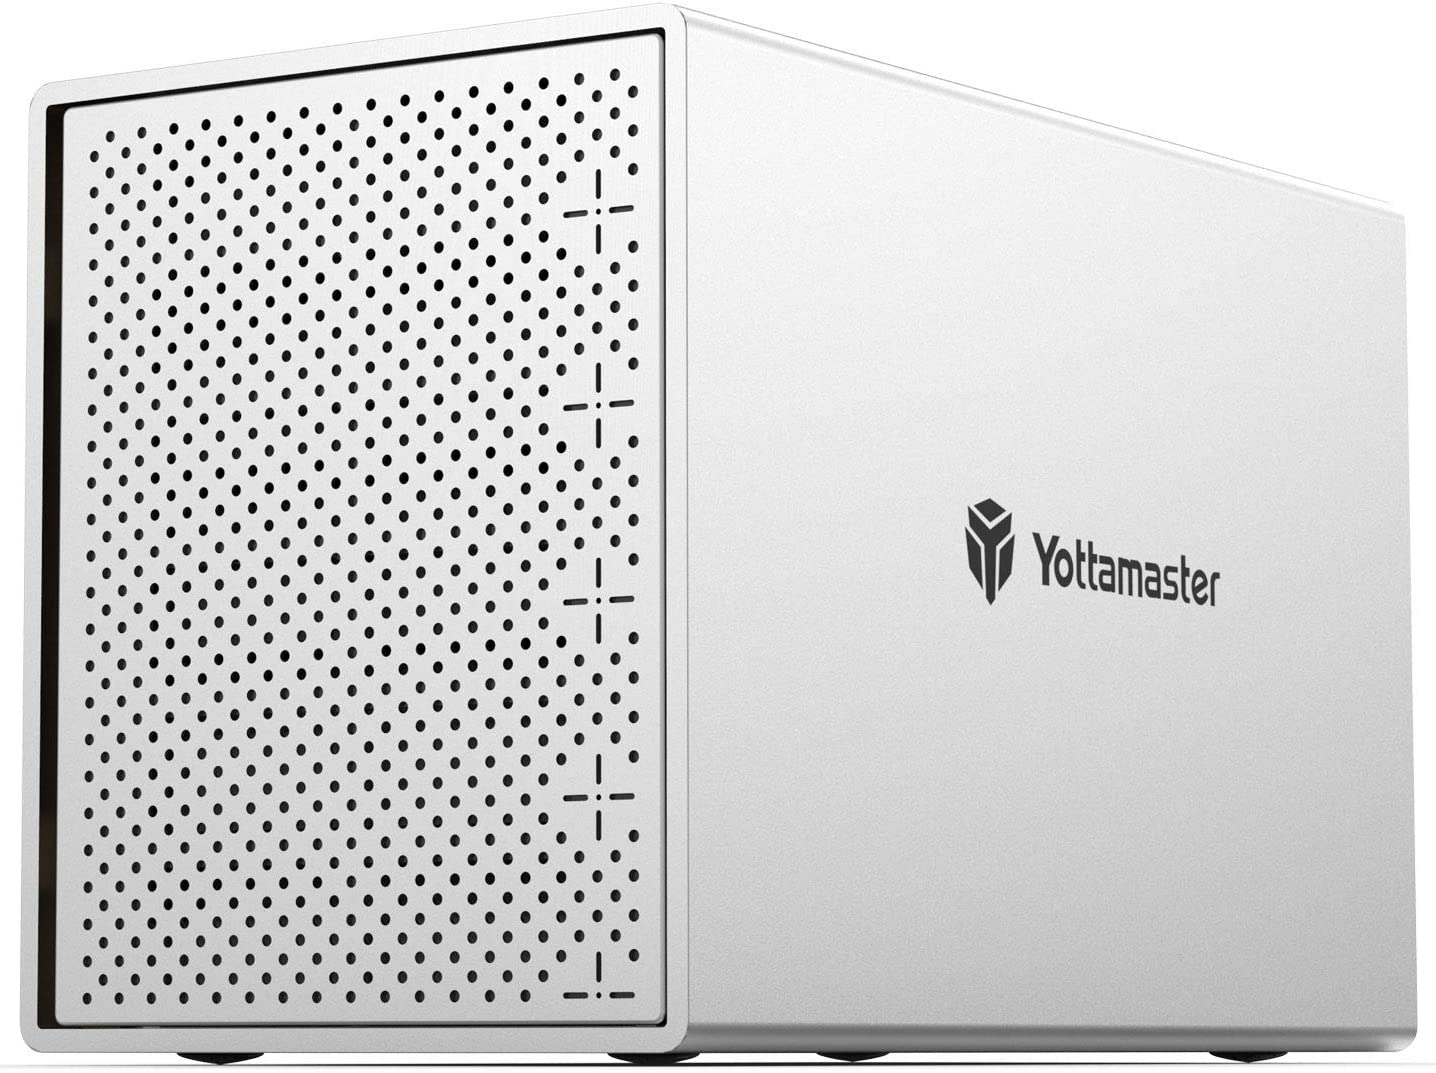 Yottamaster Aluminum Alloy 5 Bay 2.5/3.5 inch USB3.1 Type C External Hard Drive Enclosure SATAIII Support 5 x 16TB & UASP,Mac Style Designed for Personal Storage at Home&Office- [PS500C3]